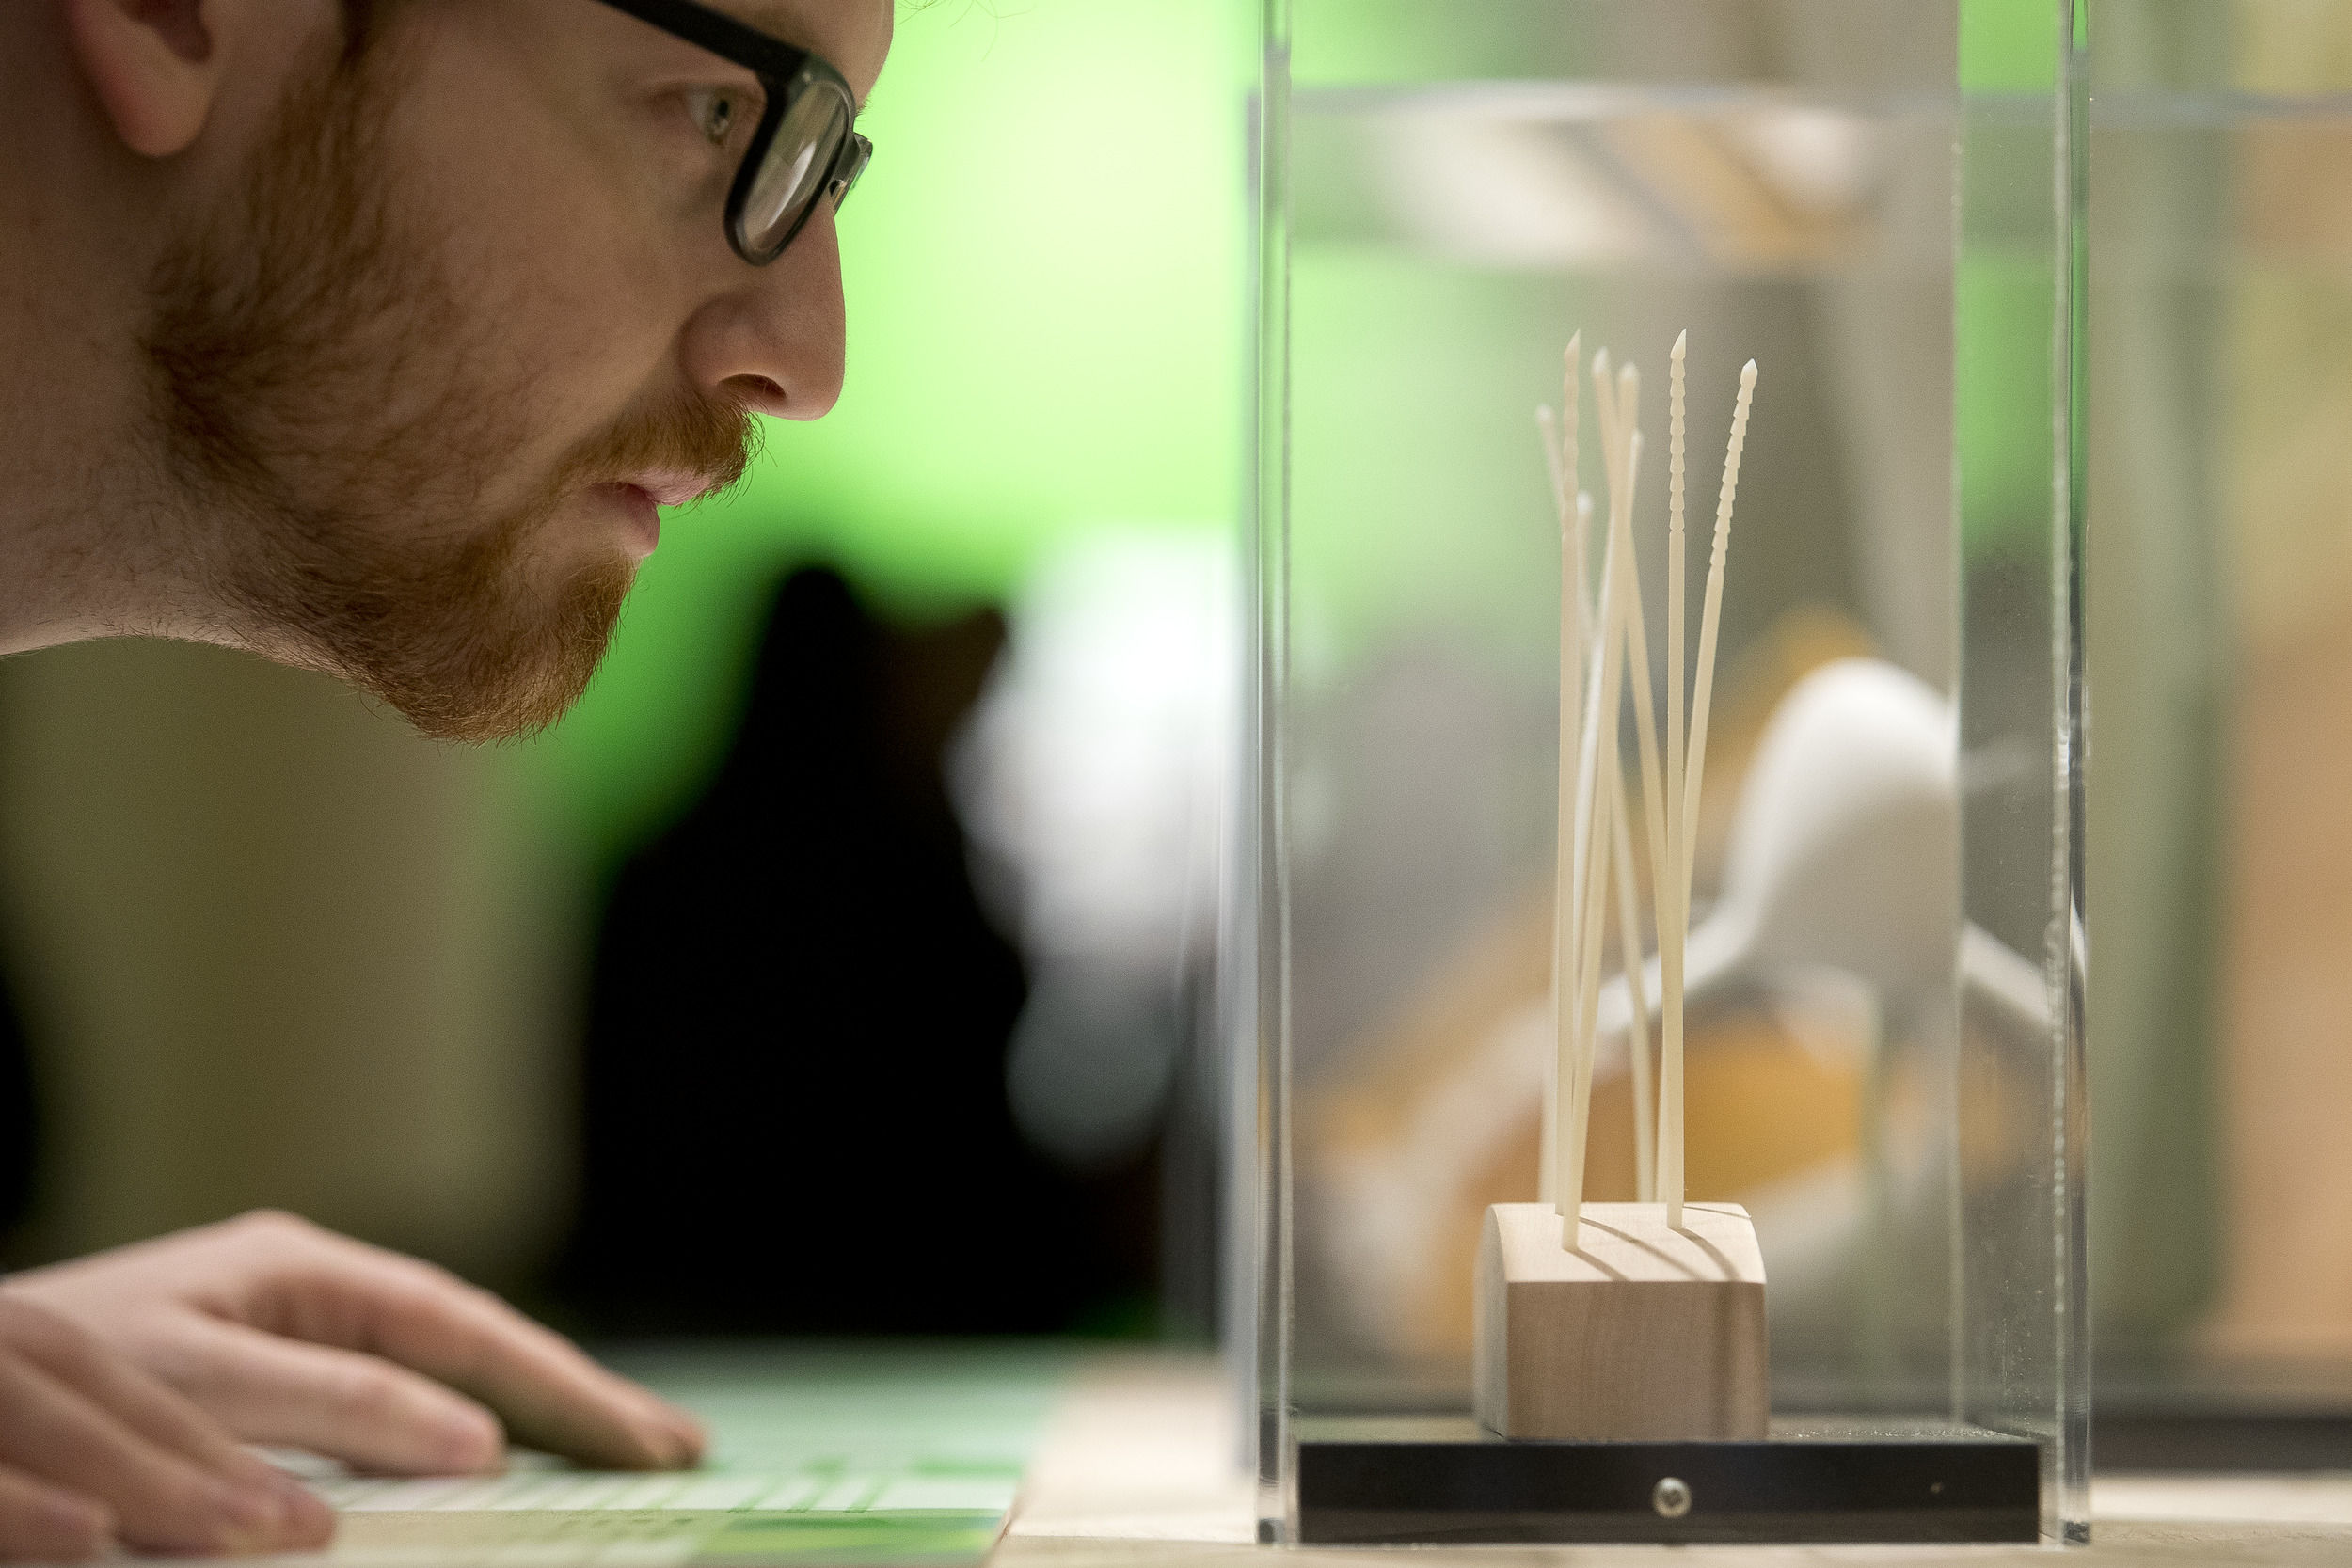 A student examines the 3D needles exhibit at the Charles Library.